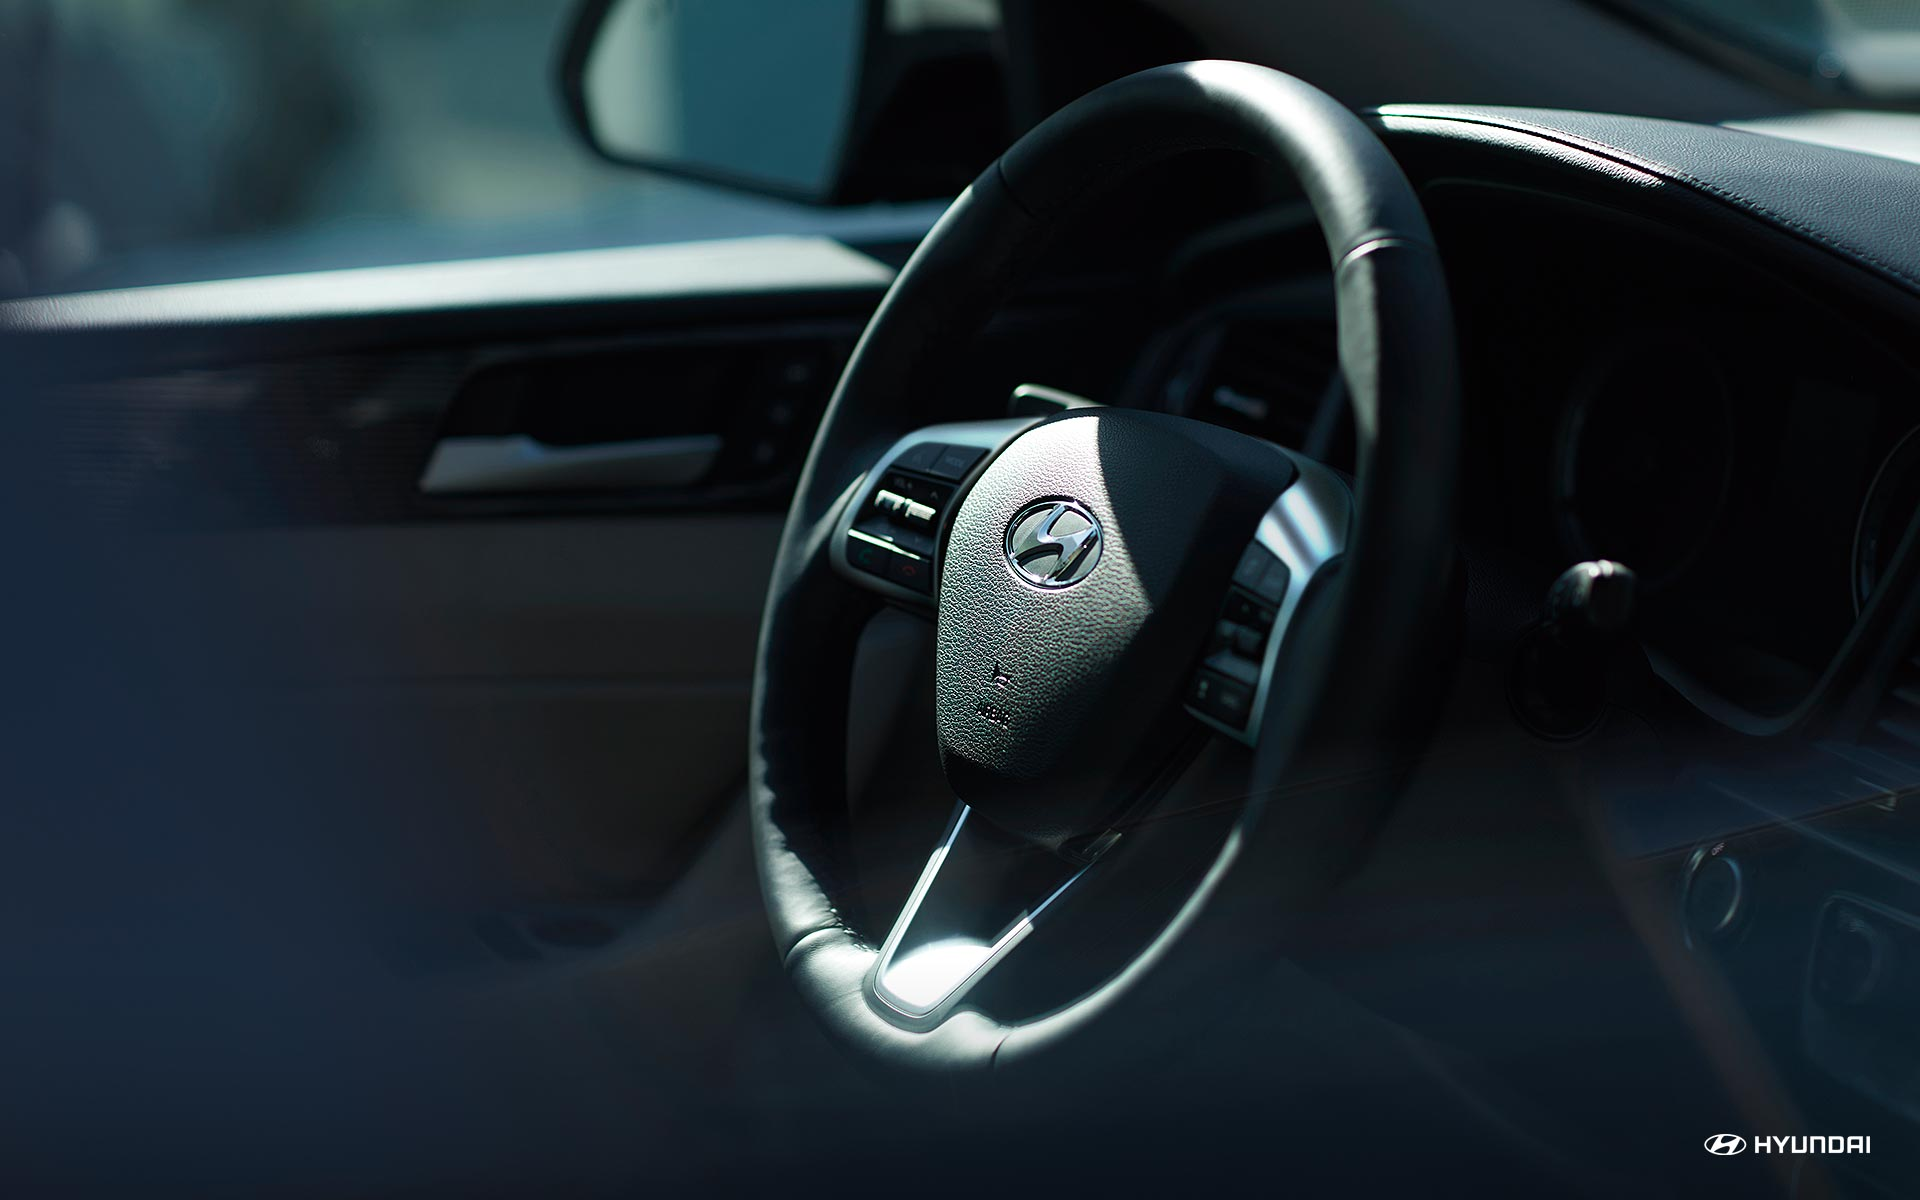 Get Behind the Wheel of the 2018 Sonata Today!